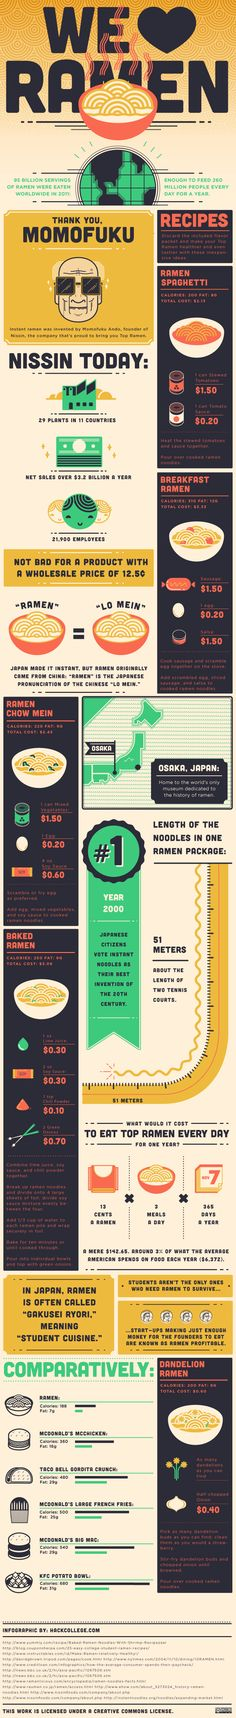 This fun infographic includes everything ramen lovers need to know about their favorite dish